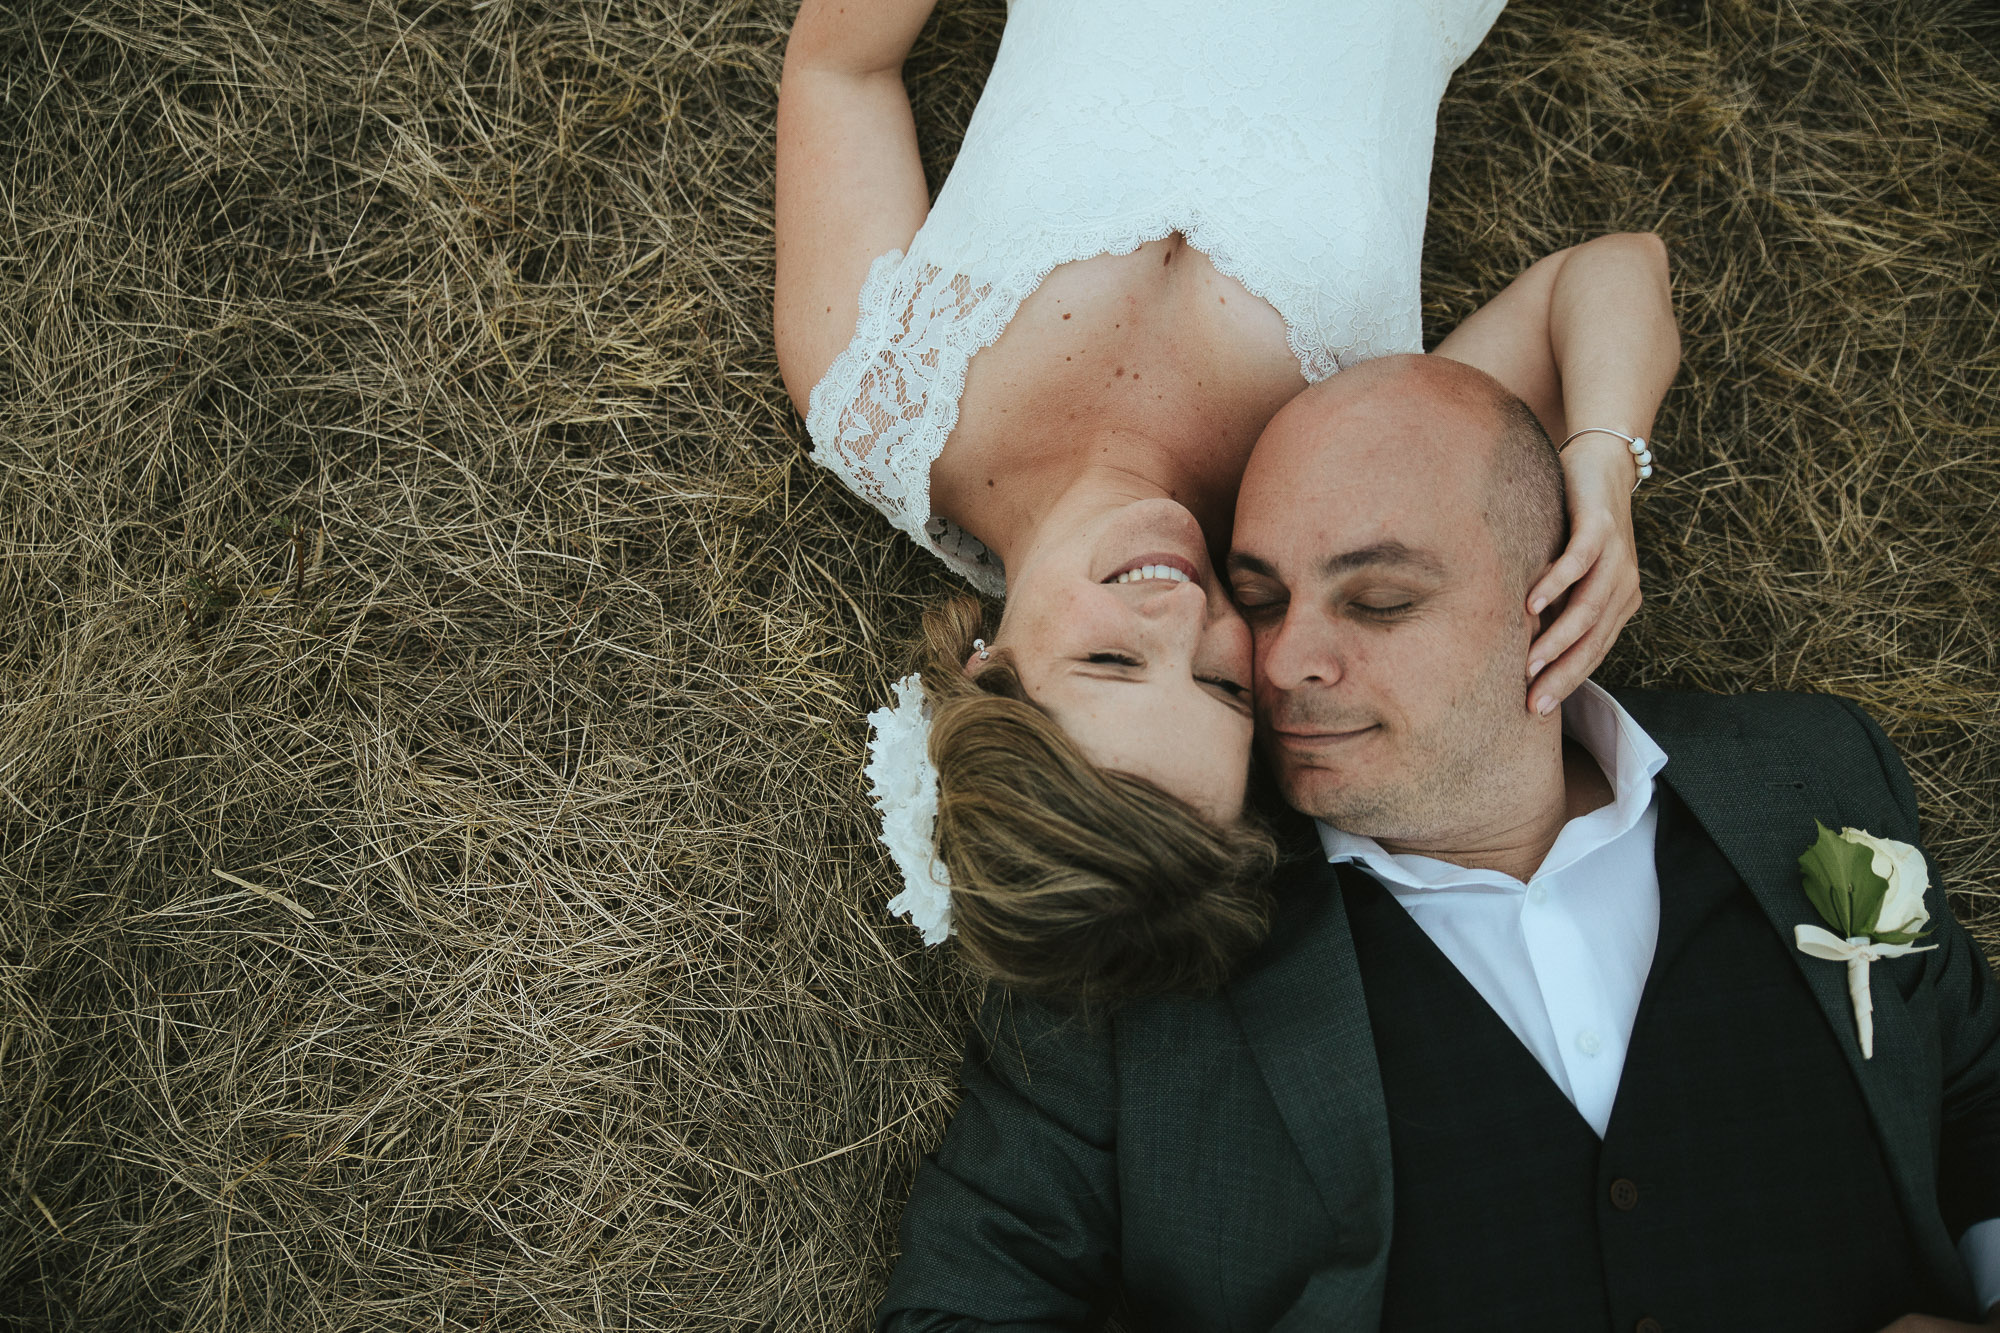 Amanda+Matt-website-056.jpg